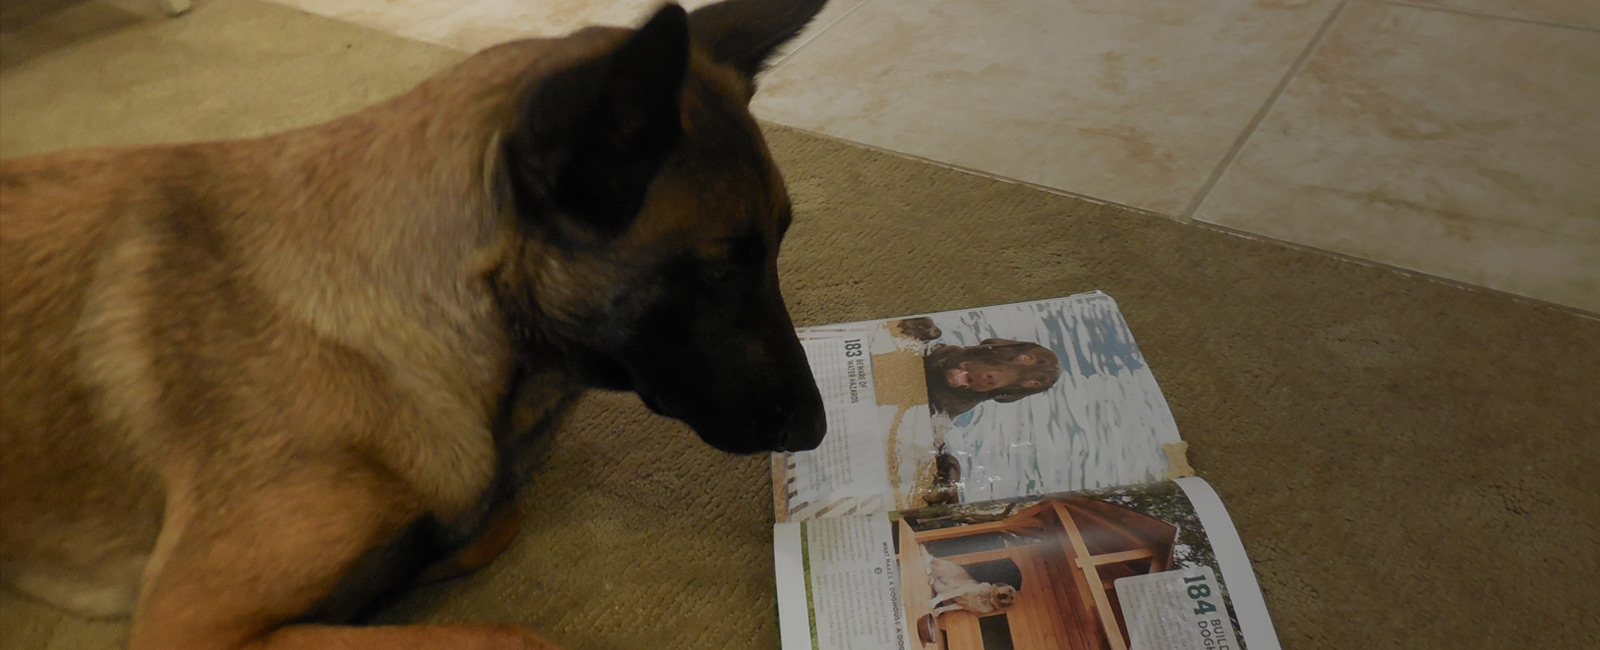 german sheppard reading magazine